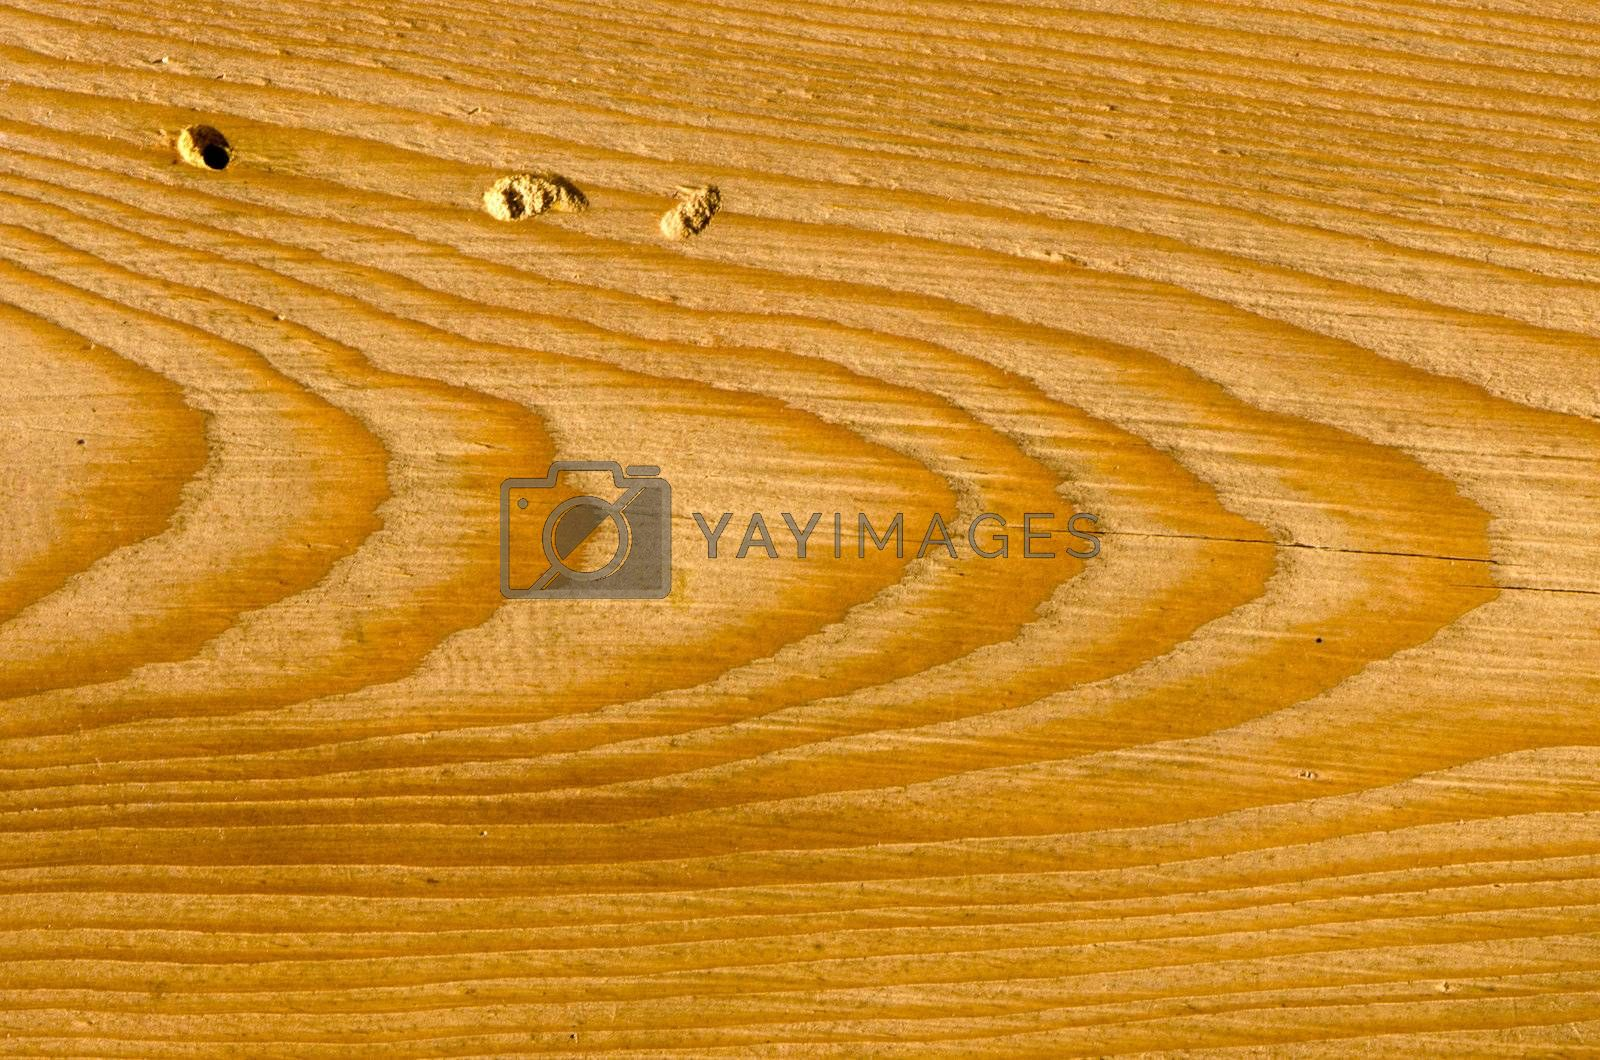 Background of wooden building wall plank closeup details fragment.